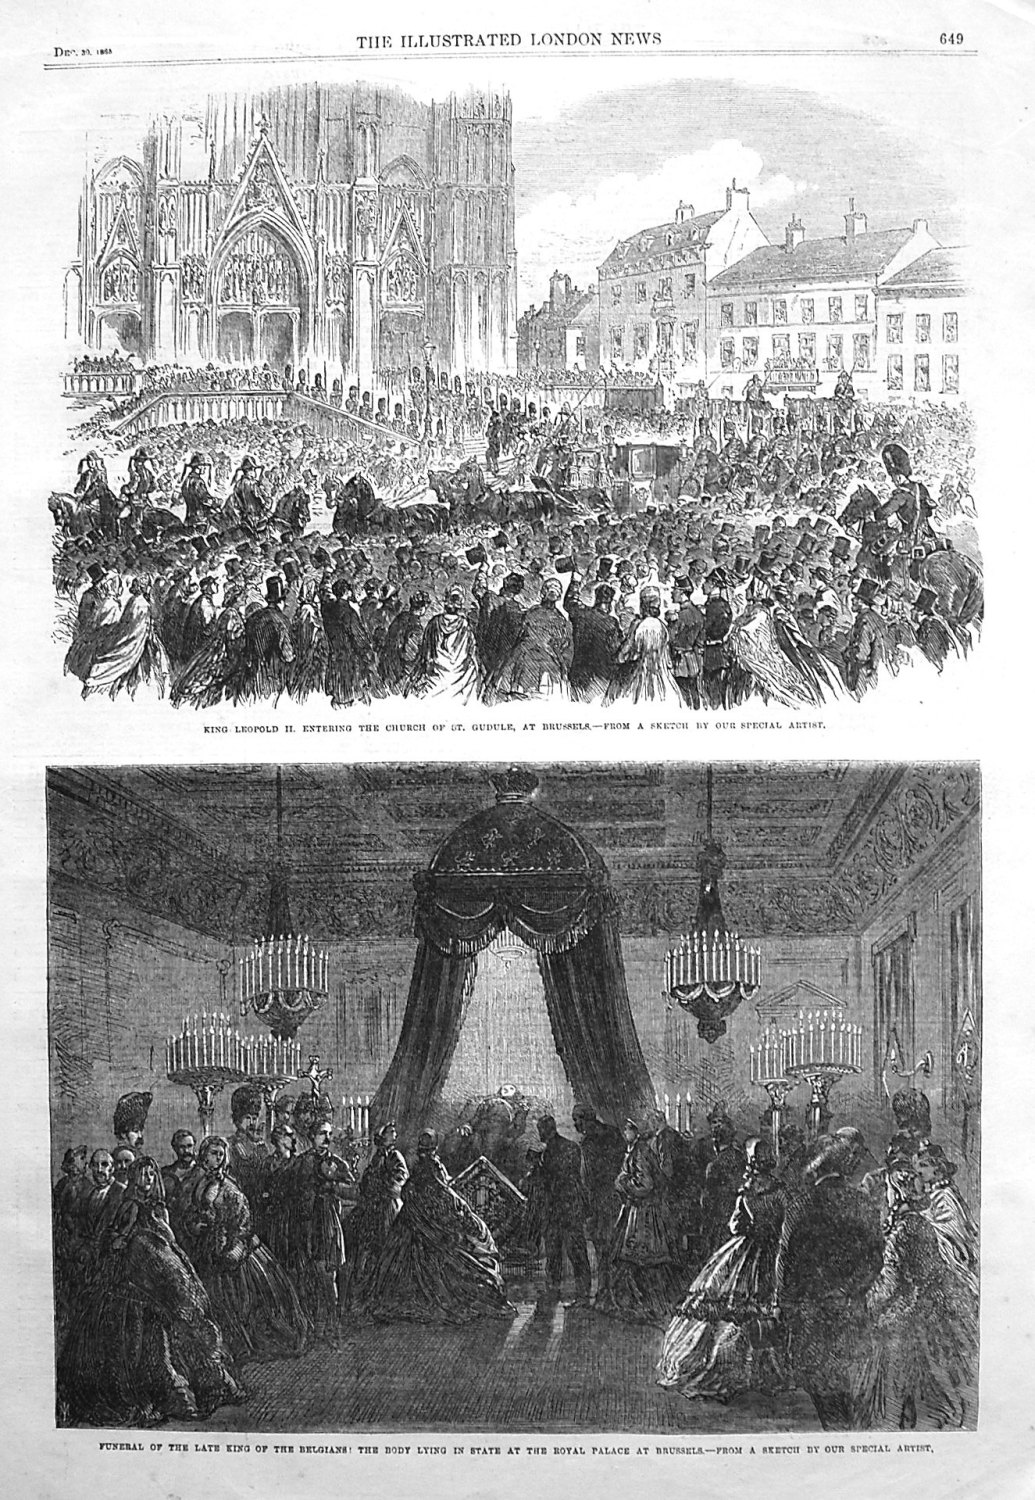 King Leopold II. Entering the Church of St. Gudule, at Brussels. 1865.